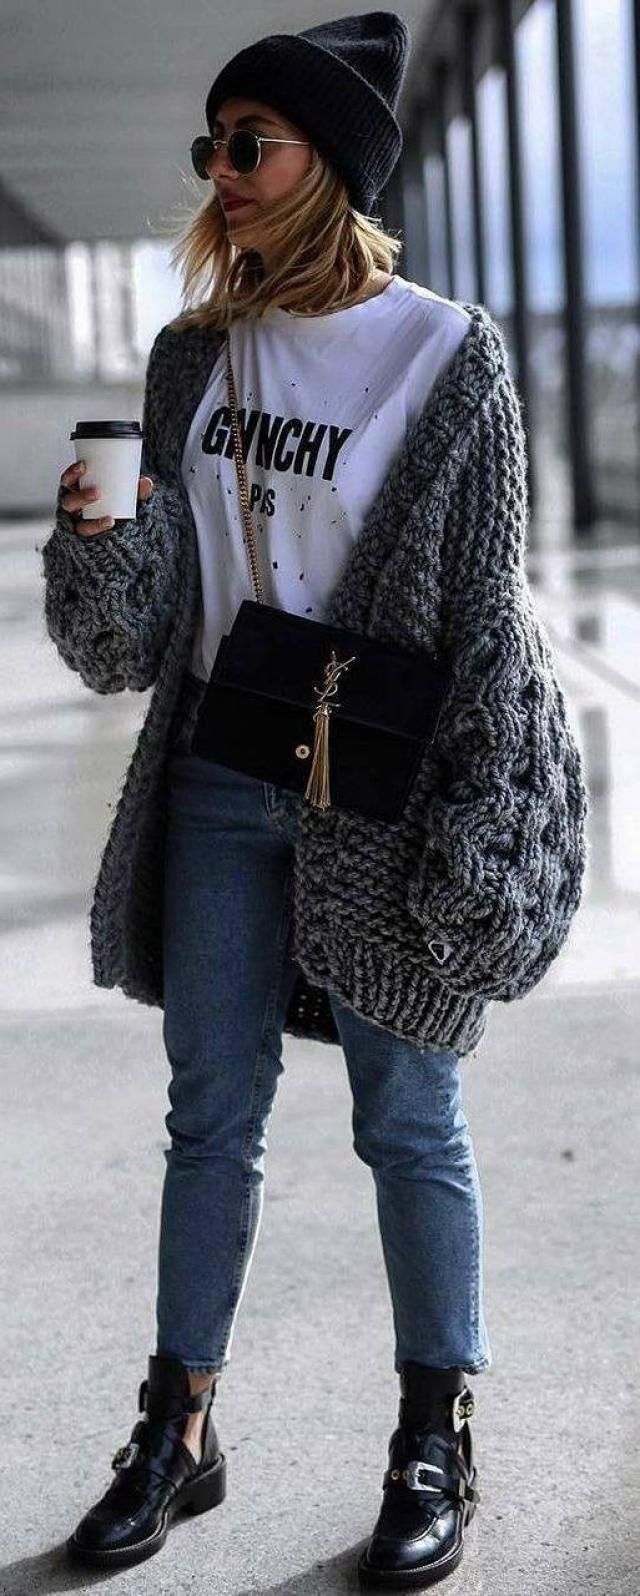 Gorgeous outfit to get your coffee with!